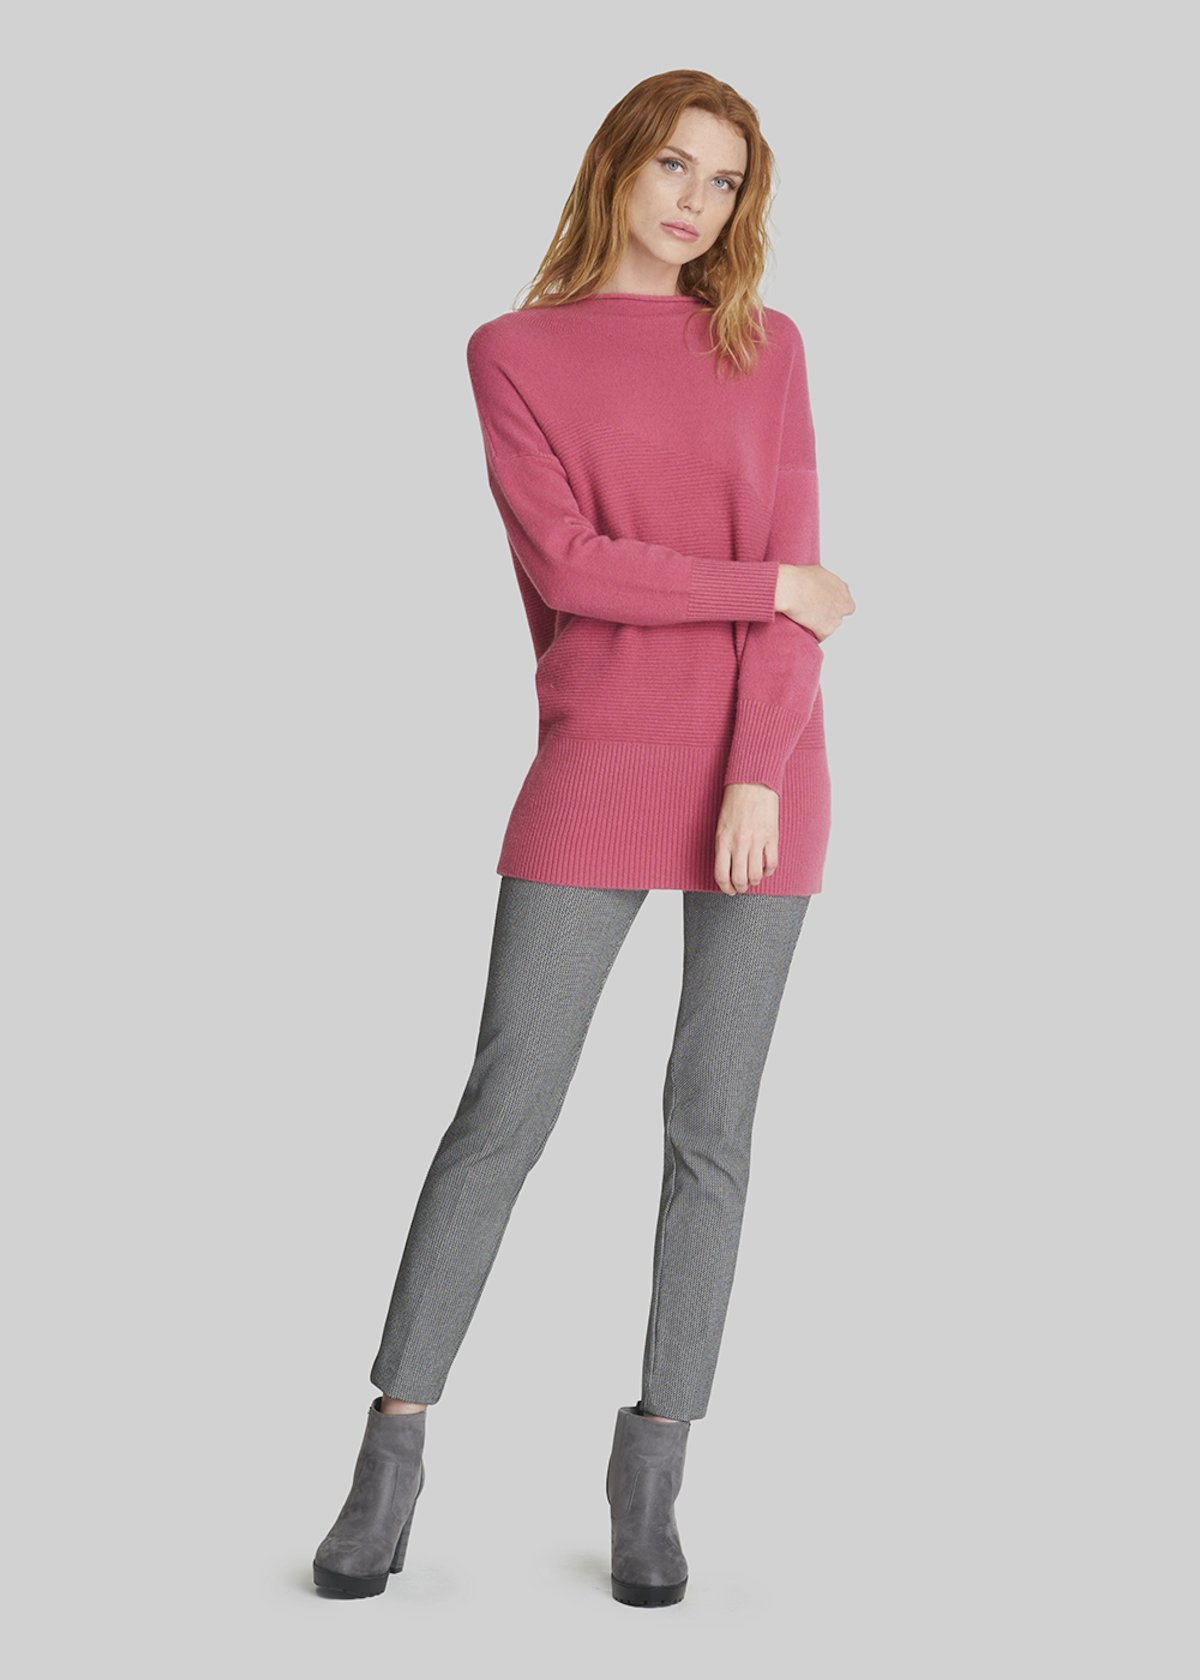 Moya Long sleeve half neck sweater